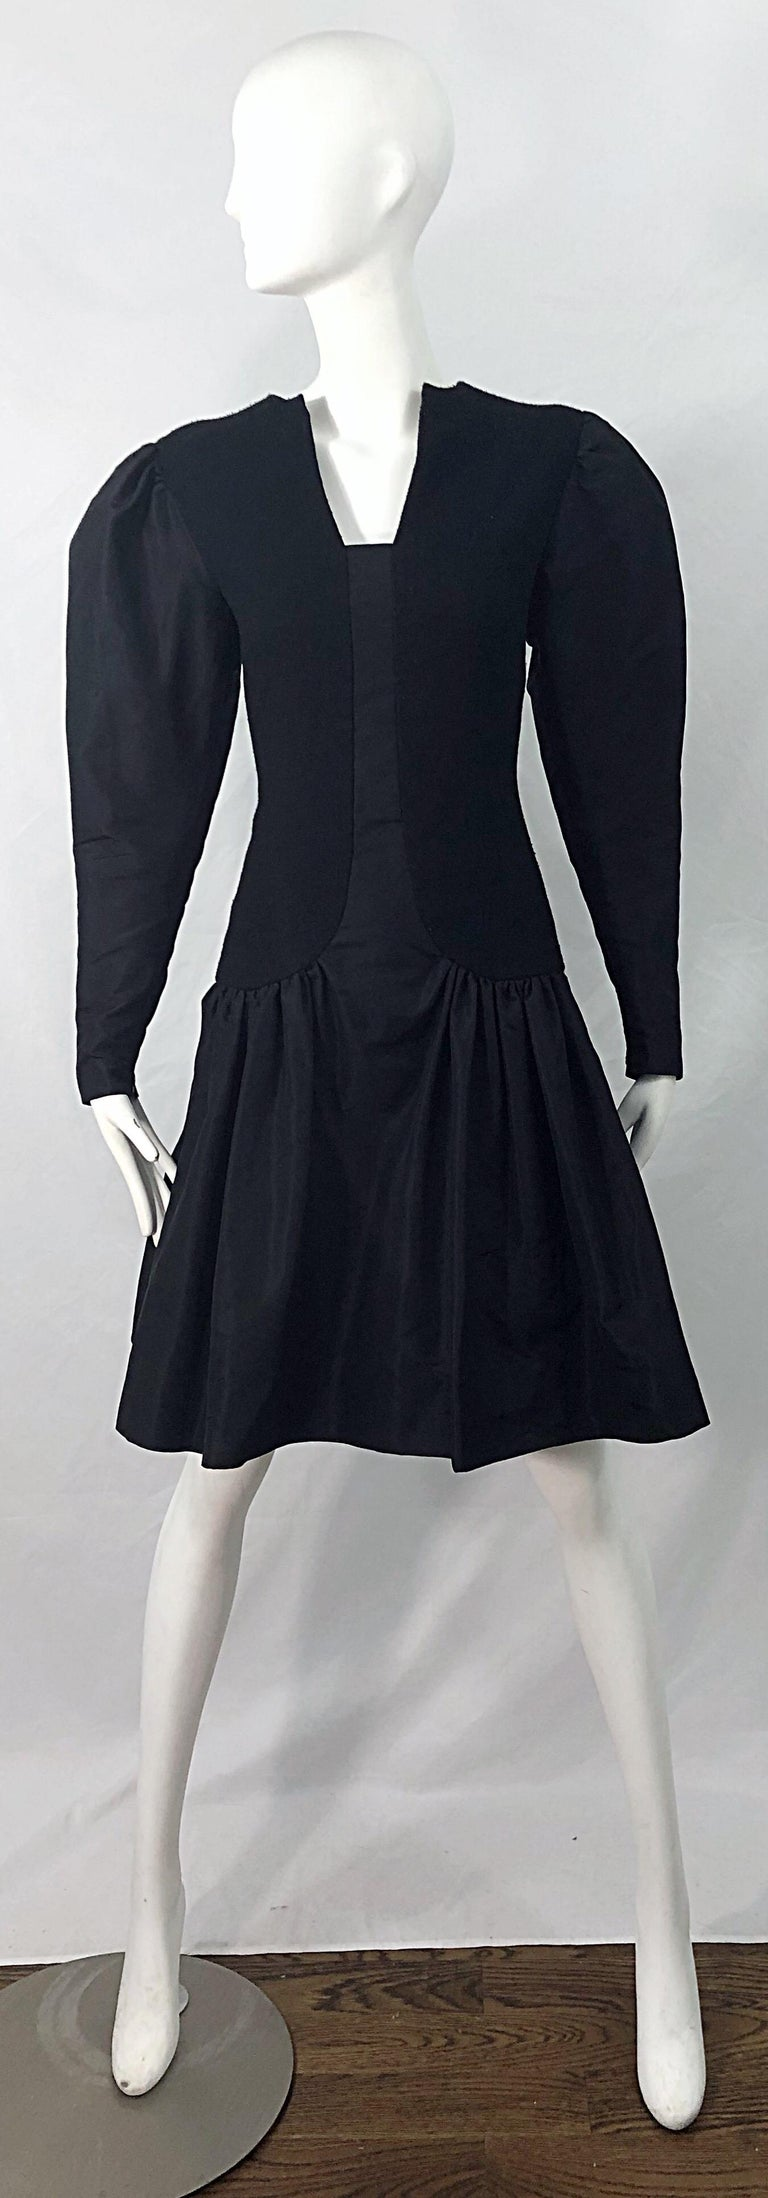 Avant Garde 1980s PAULINE TRIGERE black wool and silk taffeta dress ! Features a tailored wool bodice with taffeta panel down the center. Full taffeta puff sleeves add just the right amount of volume. Taffeta flared skirt. Hidden zipper up the back